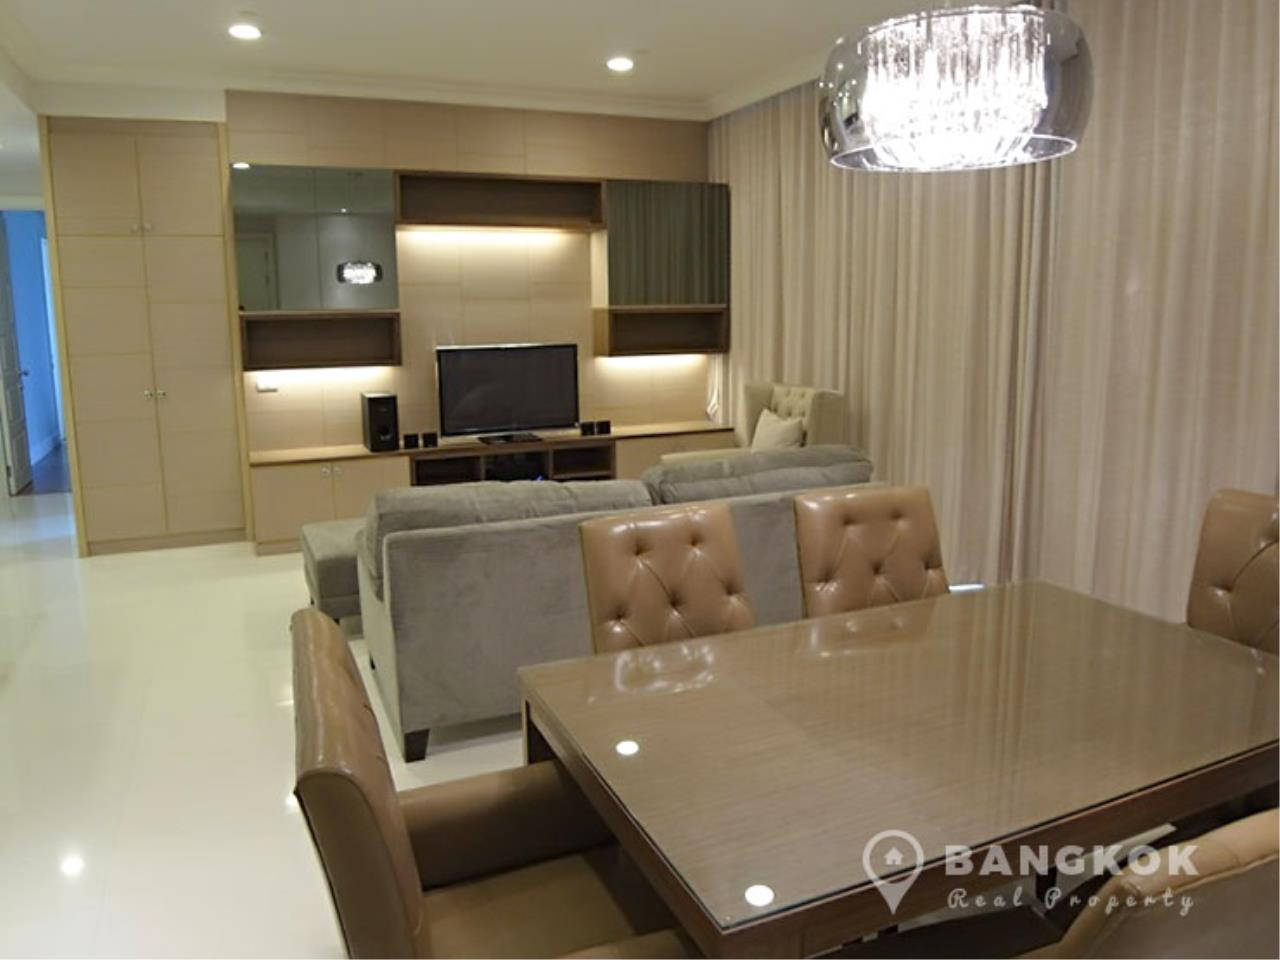 Bangkok Real Property Agency's Royce Private Residences | Luxury Modern 3 Bed Condo in Sukhumvit 1